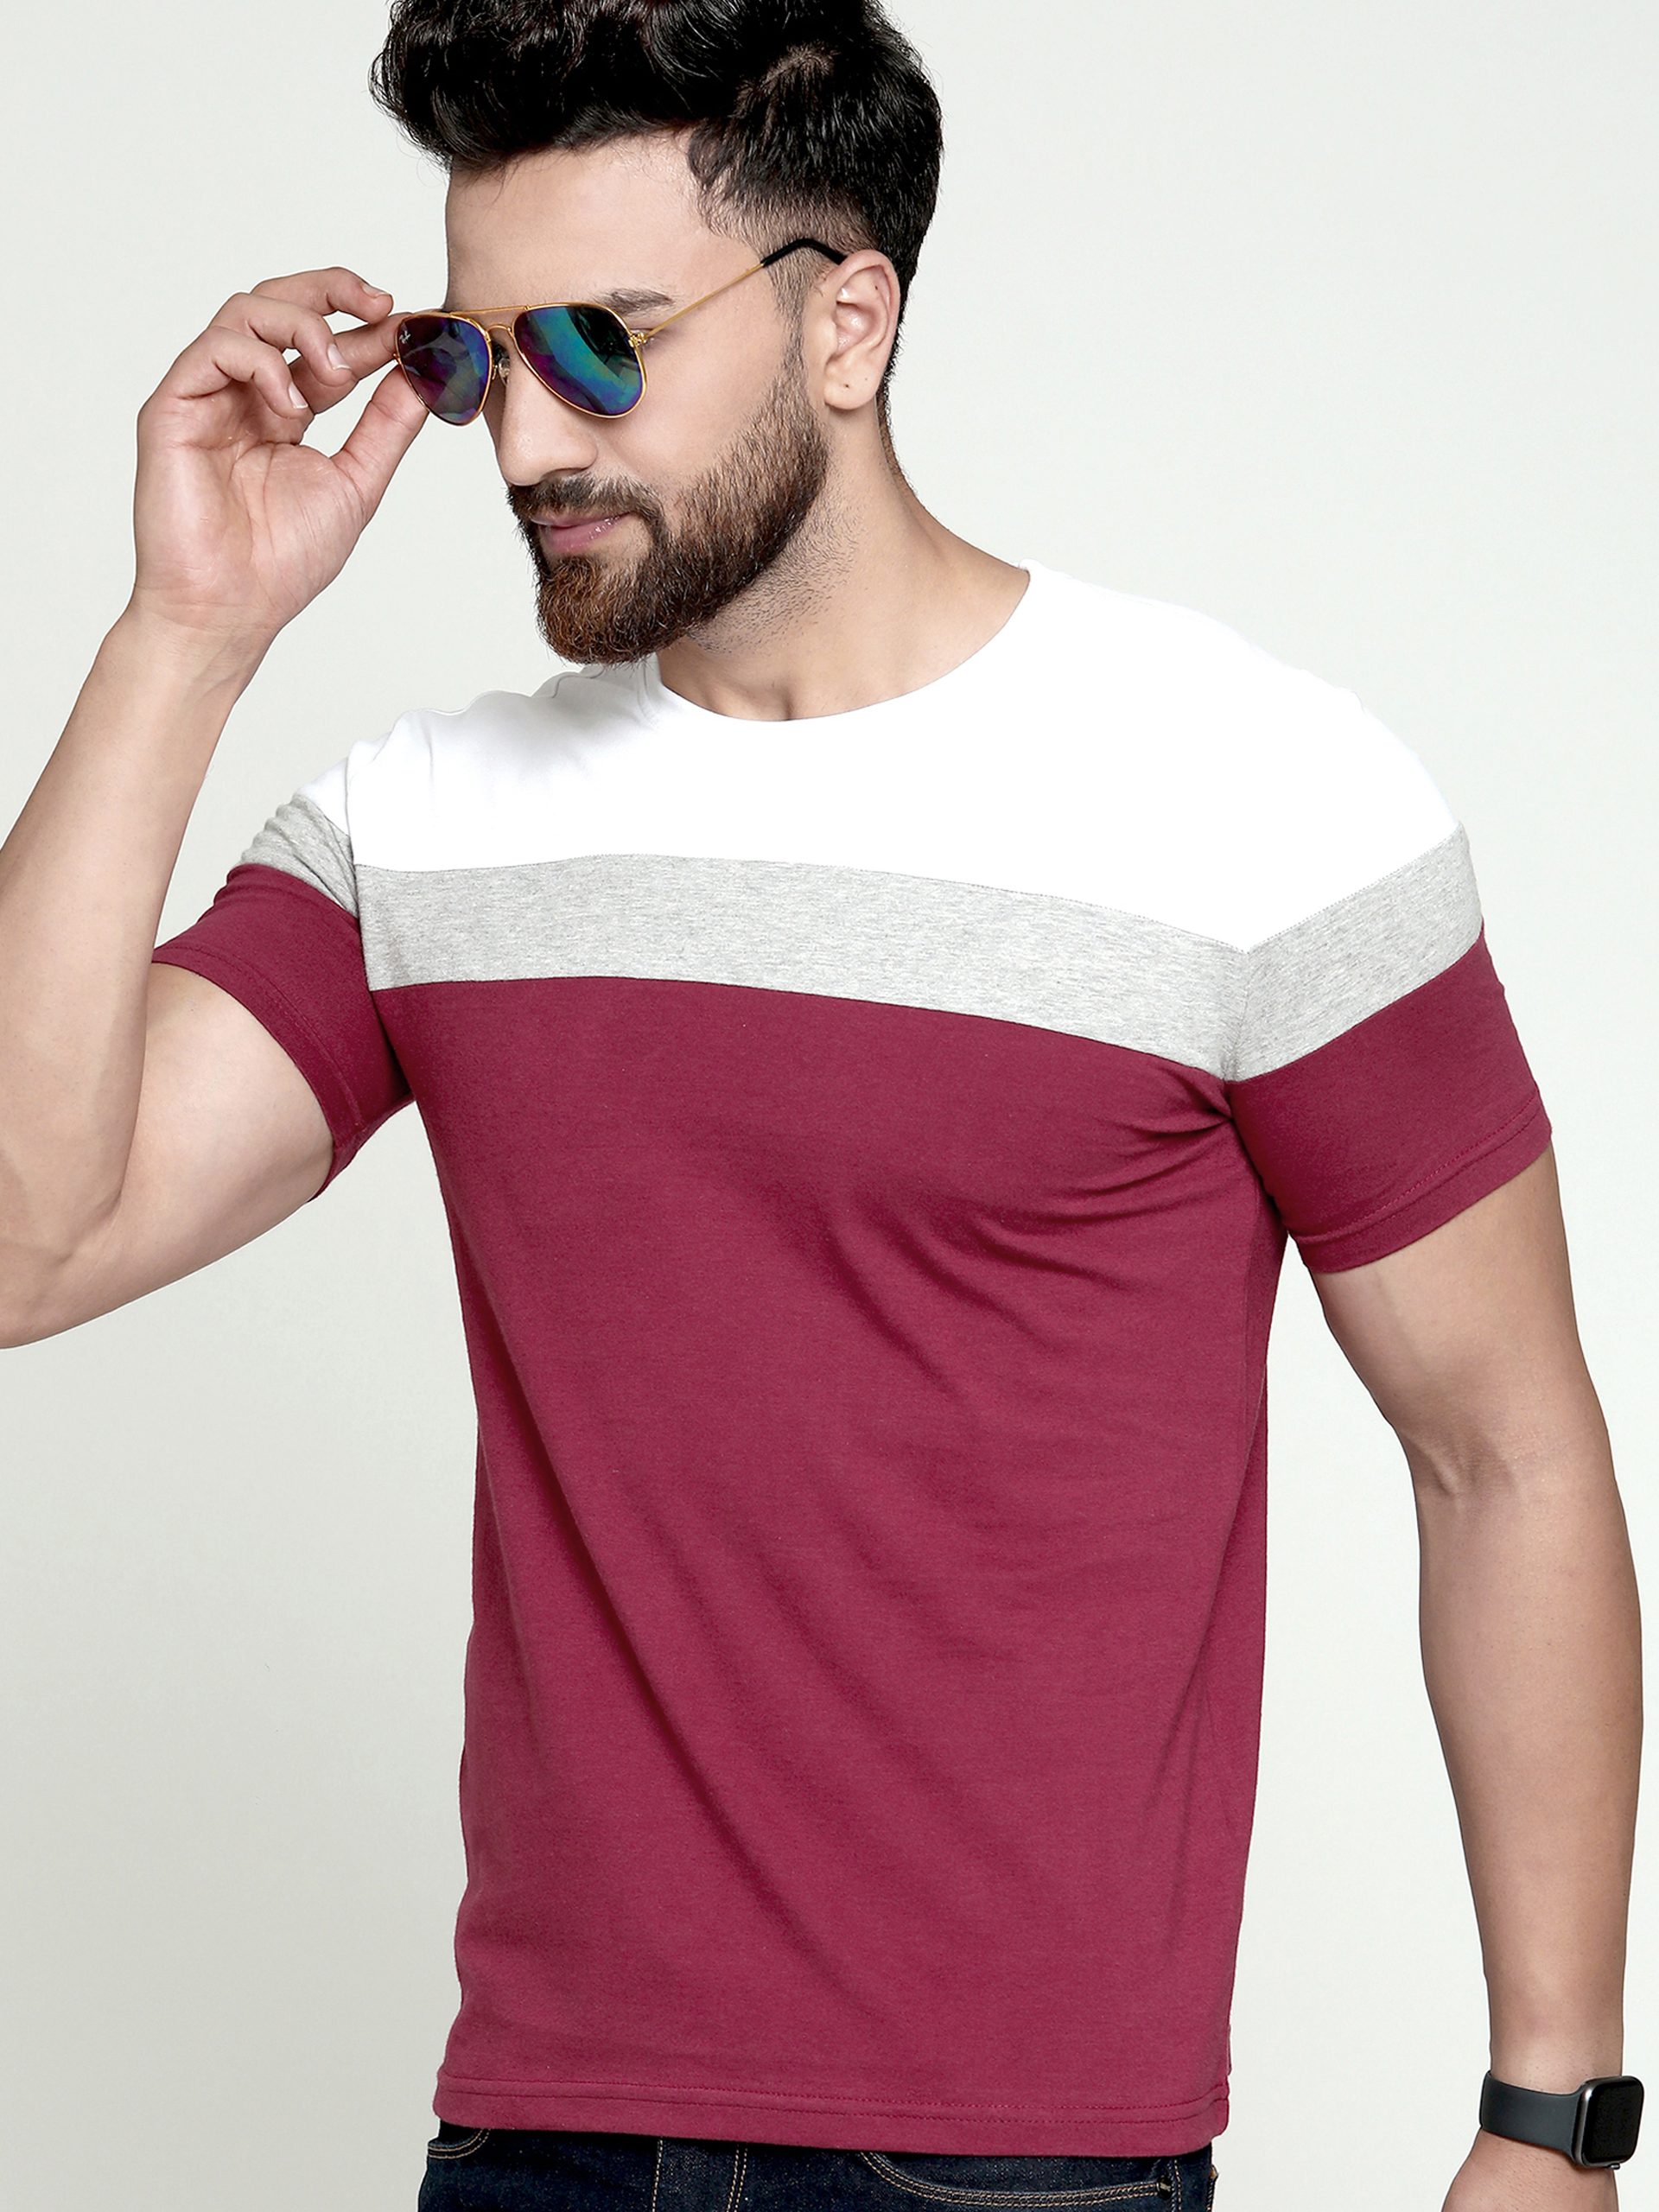 AUSK Multi Color Block T-Shirt For Men